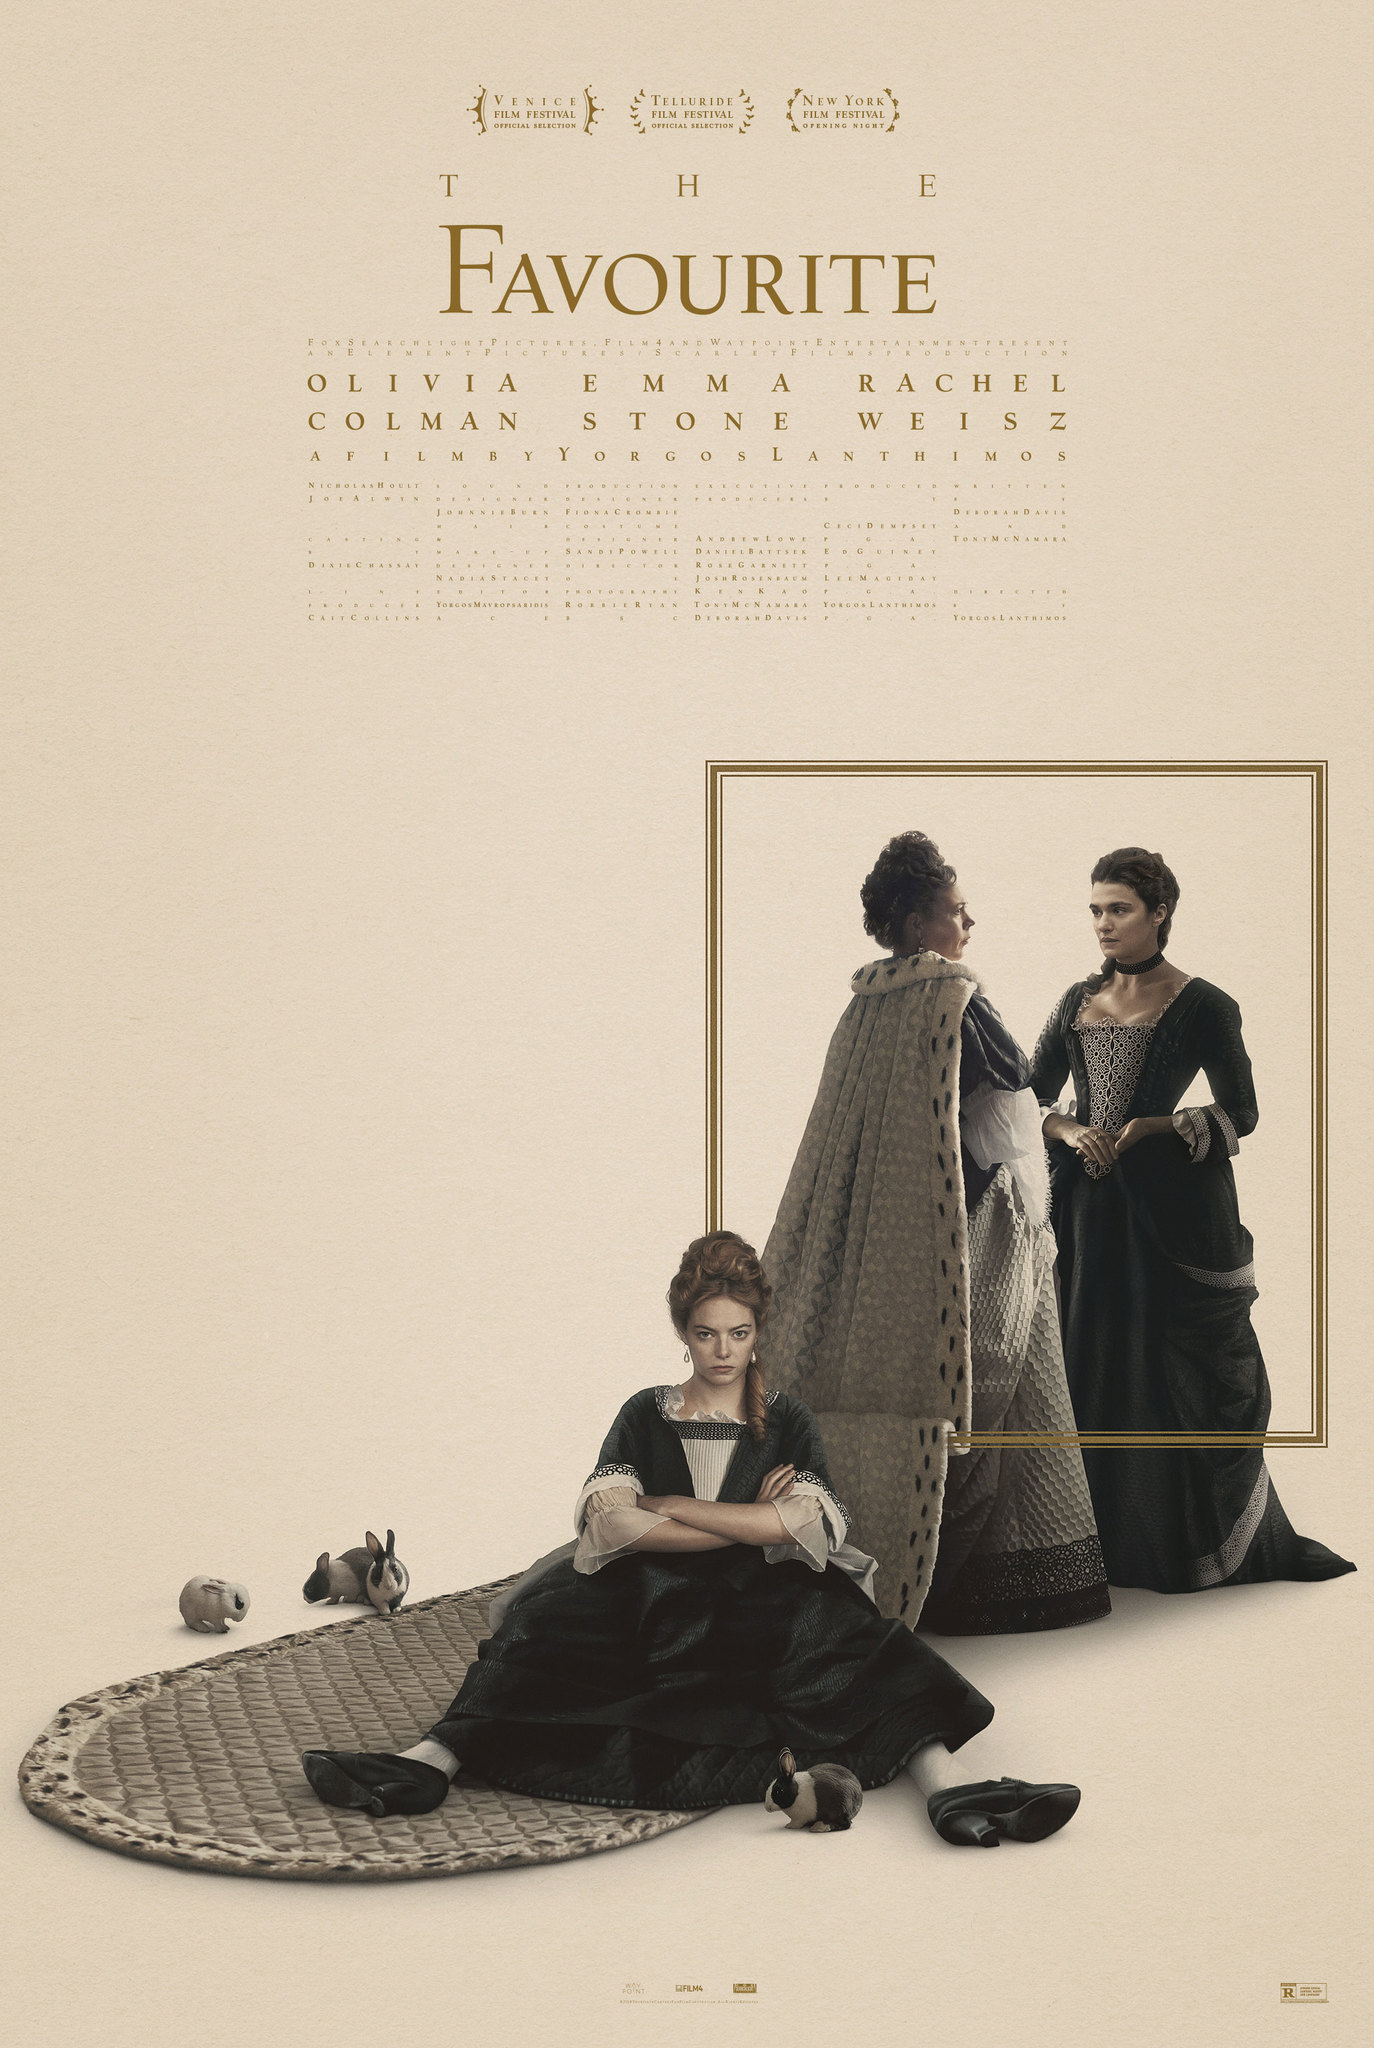 30 August - The Favourite